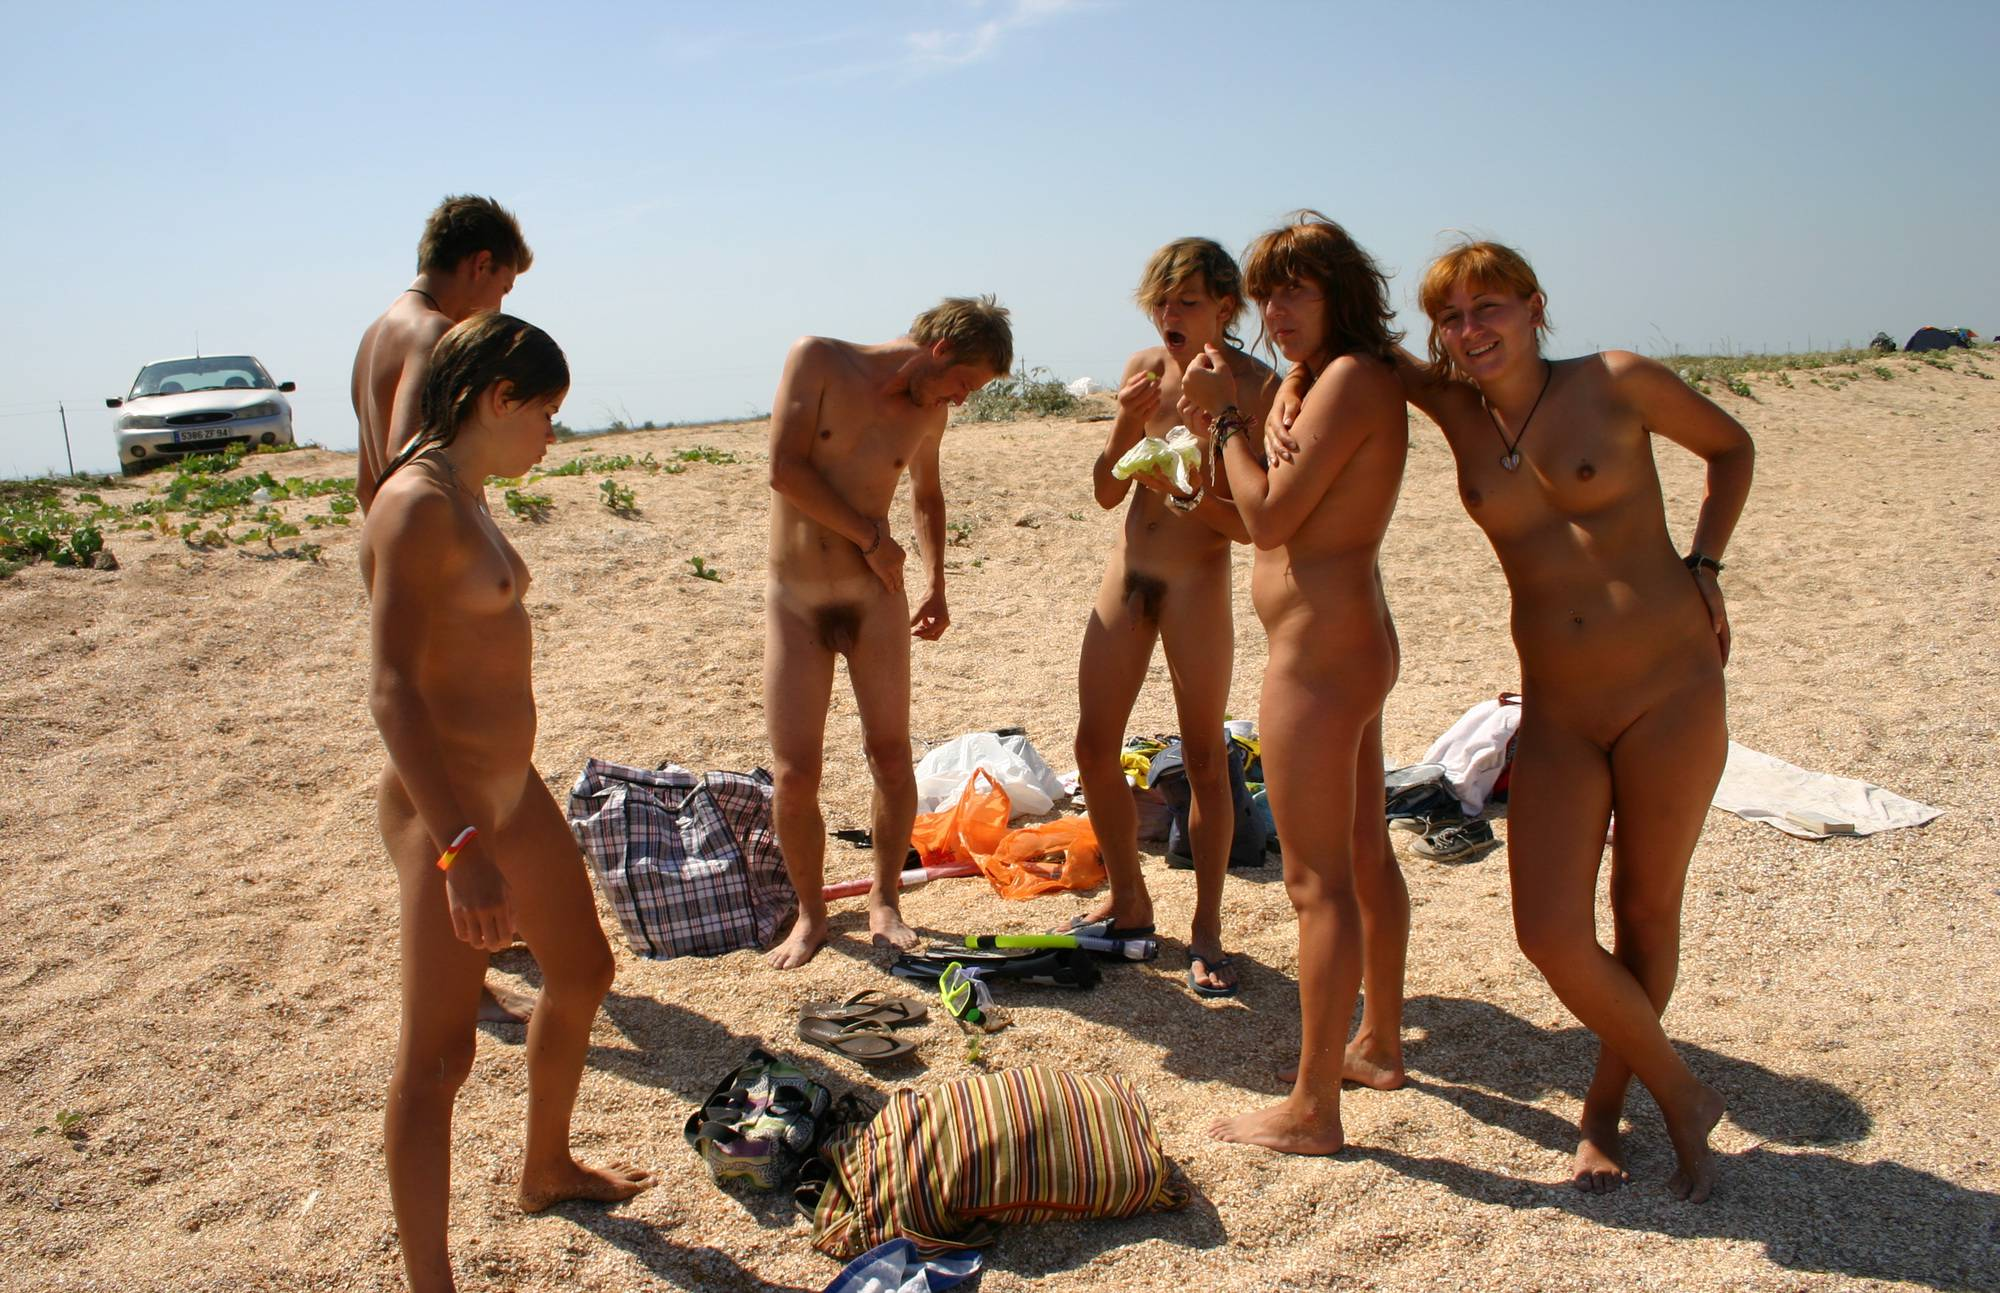 Nudist Pictures Grapes and Beach Games - 2